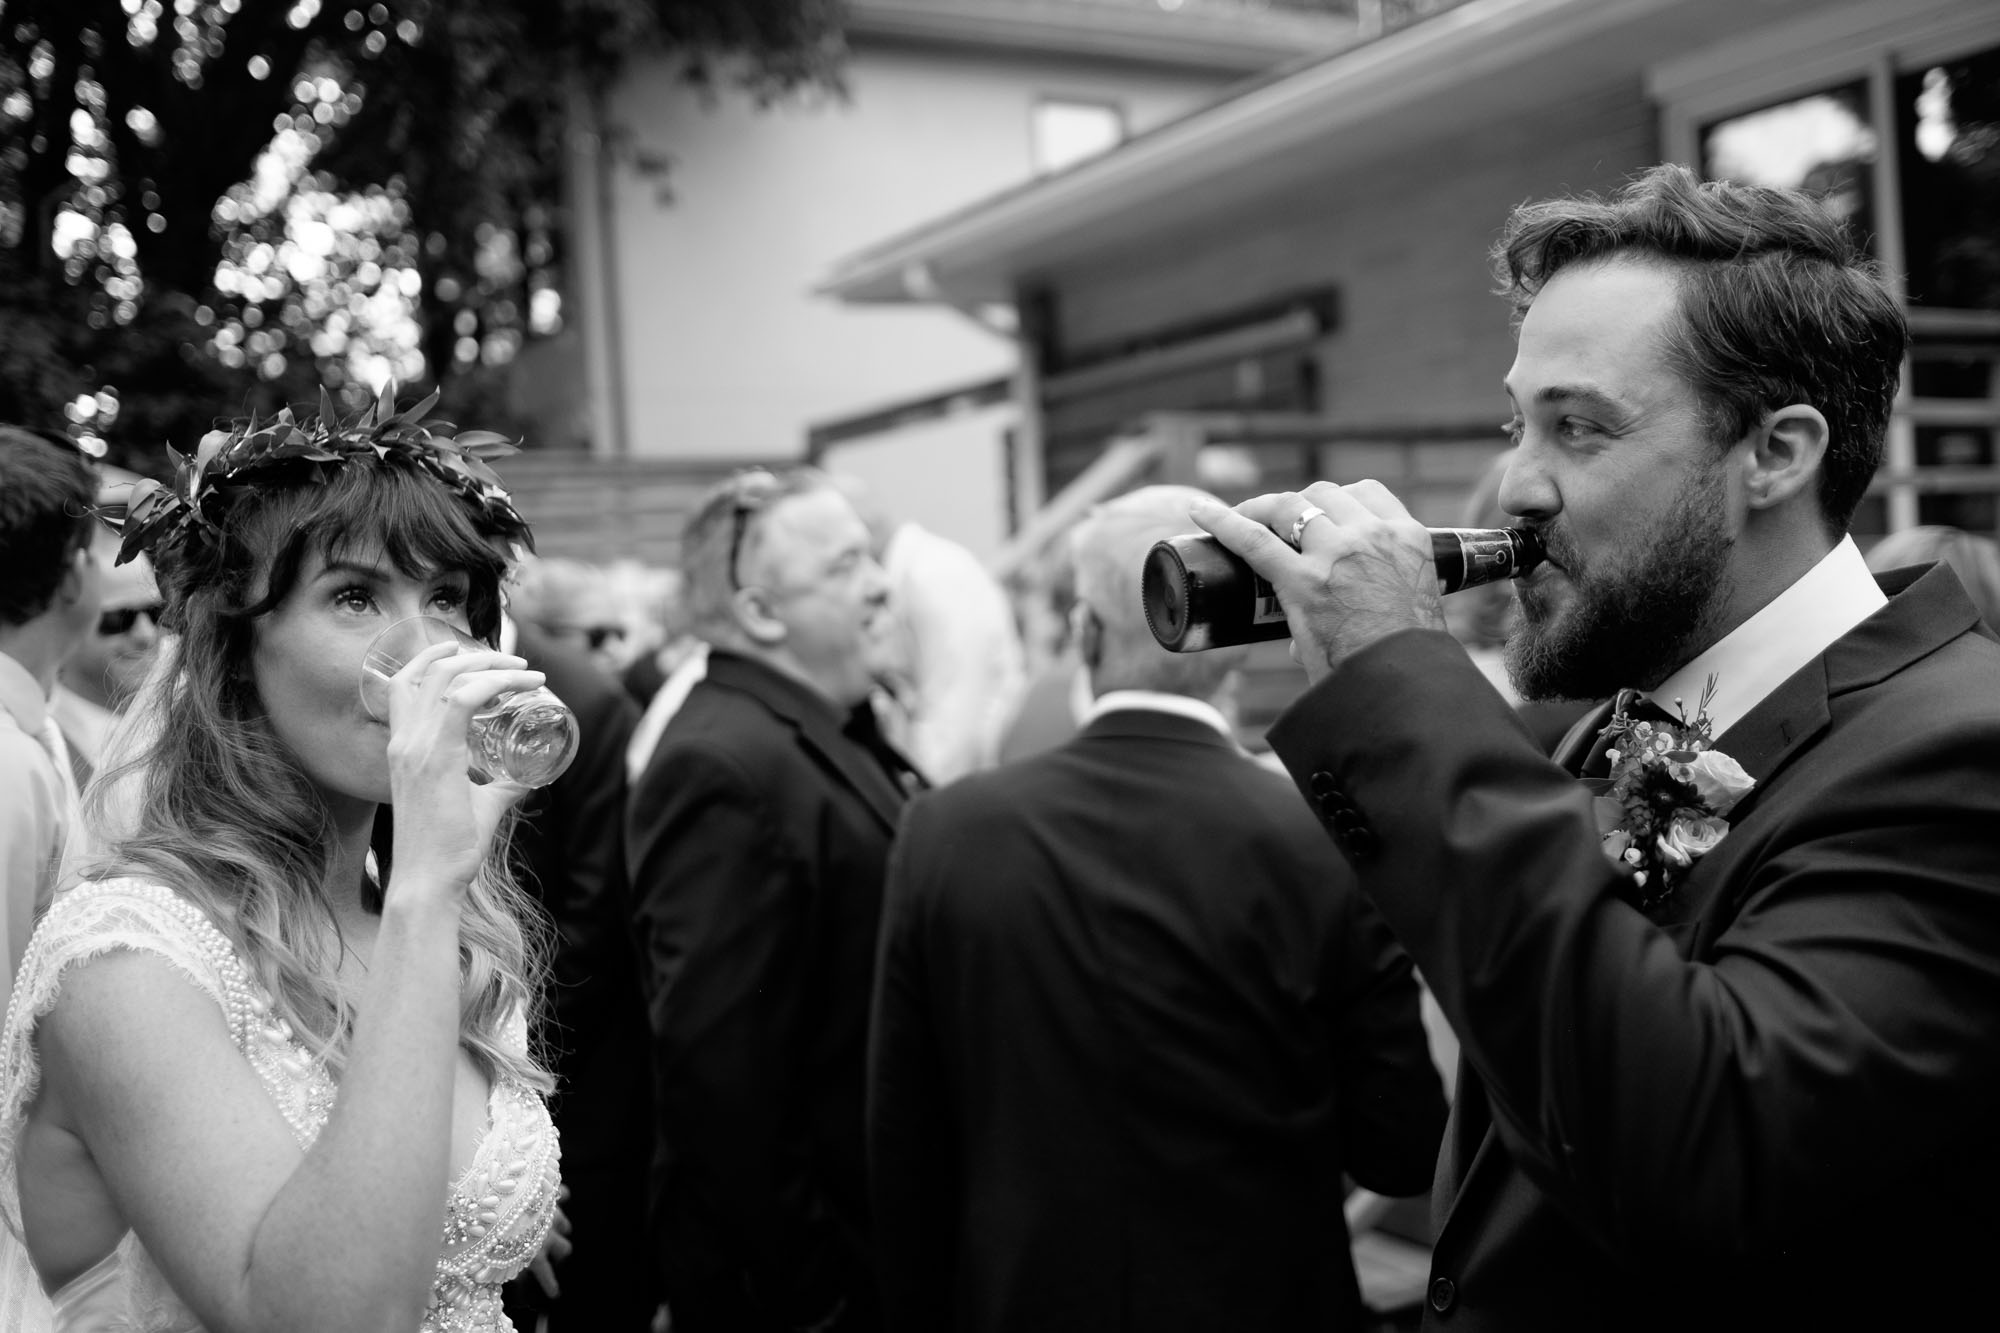 Kristin & Adam share a drink right after their outdoor wedding ceremony during their backyard wedding in Barrie, Ontario.  Photograph by Scott Williams.